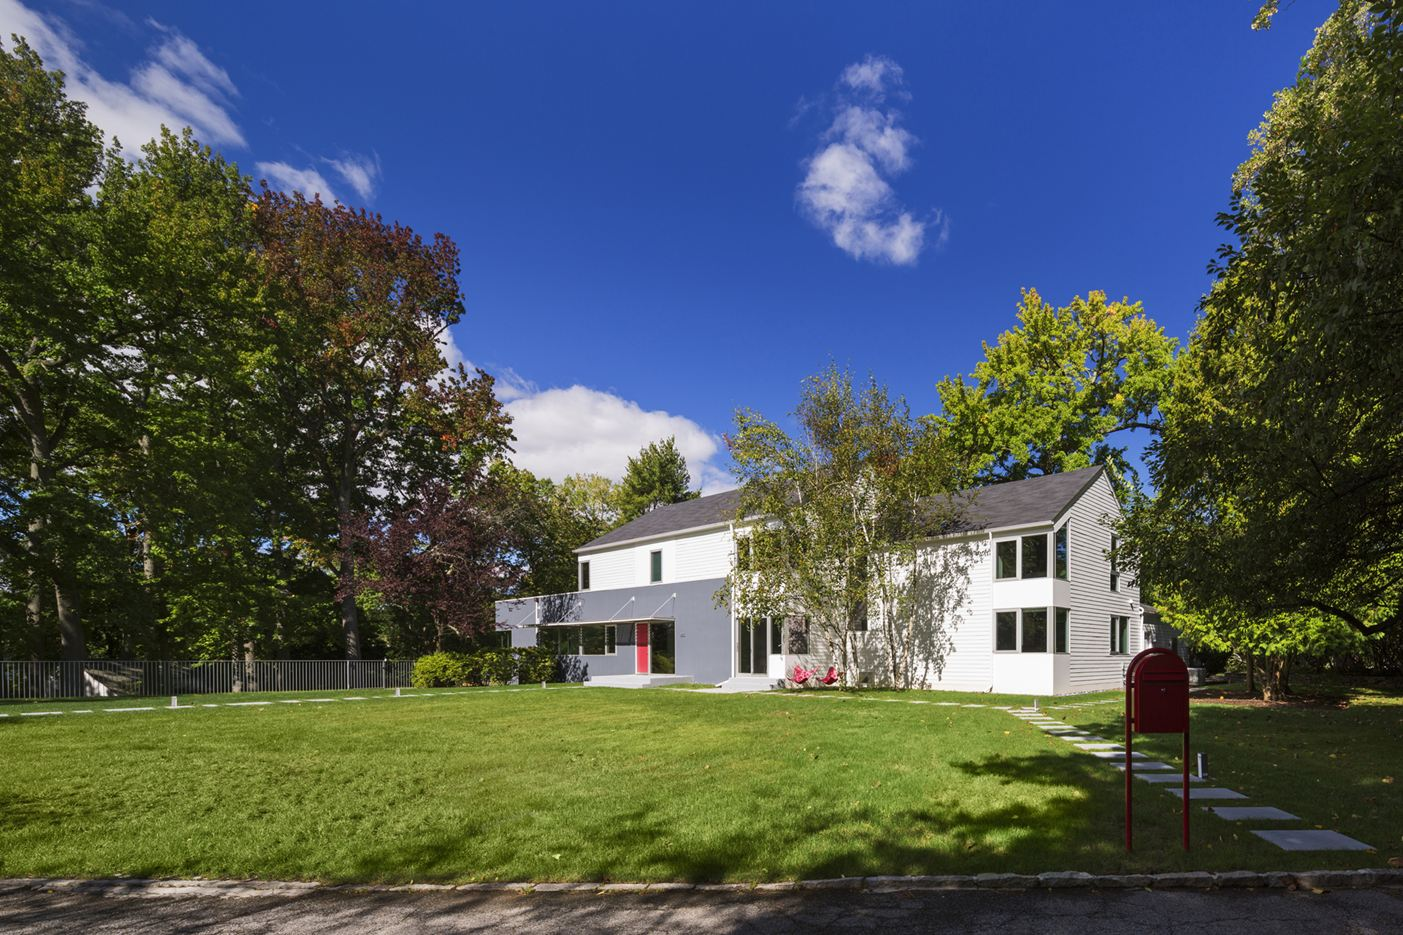 Westchester Colonial House in Westchester, New York by Fougeron Architecture